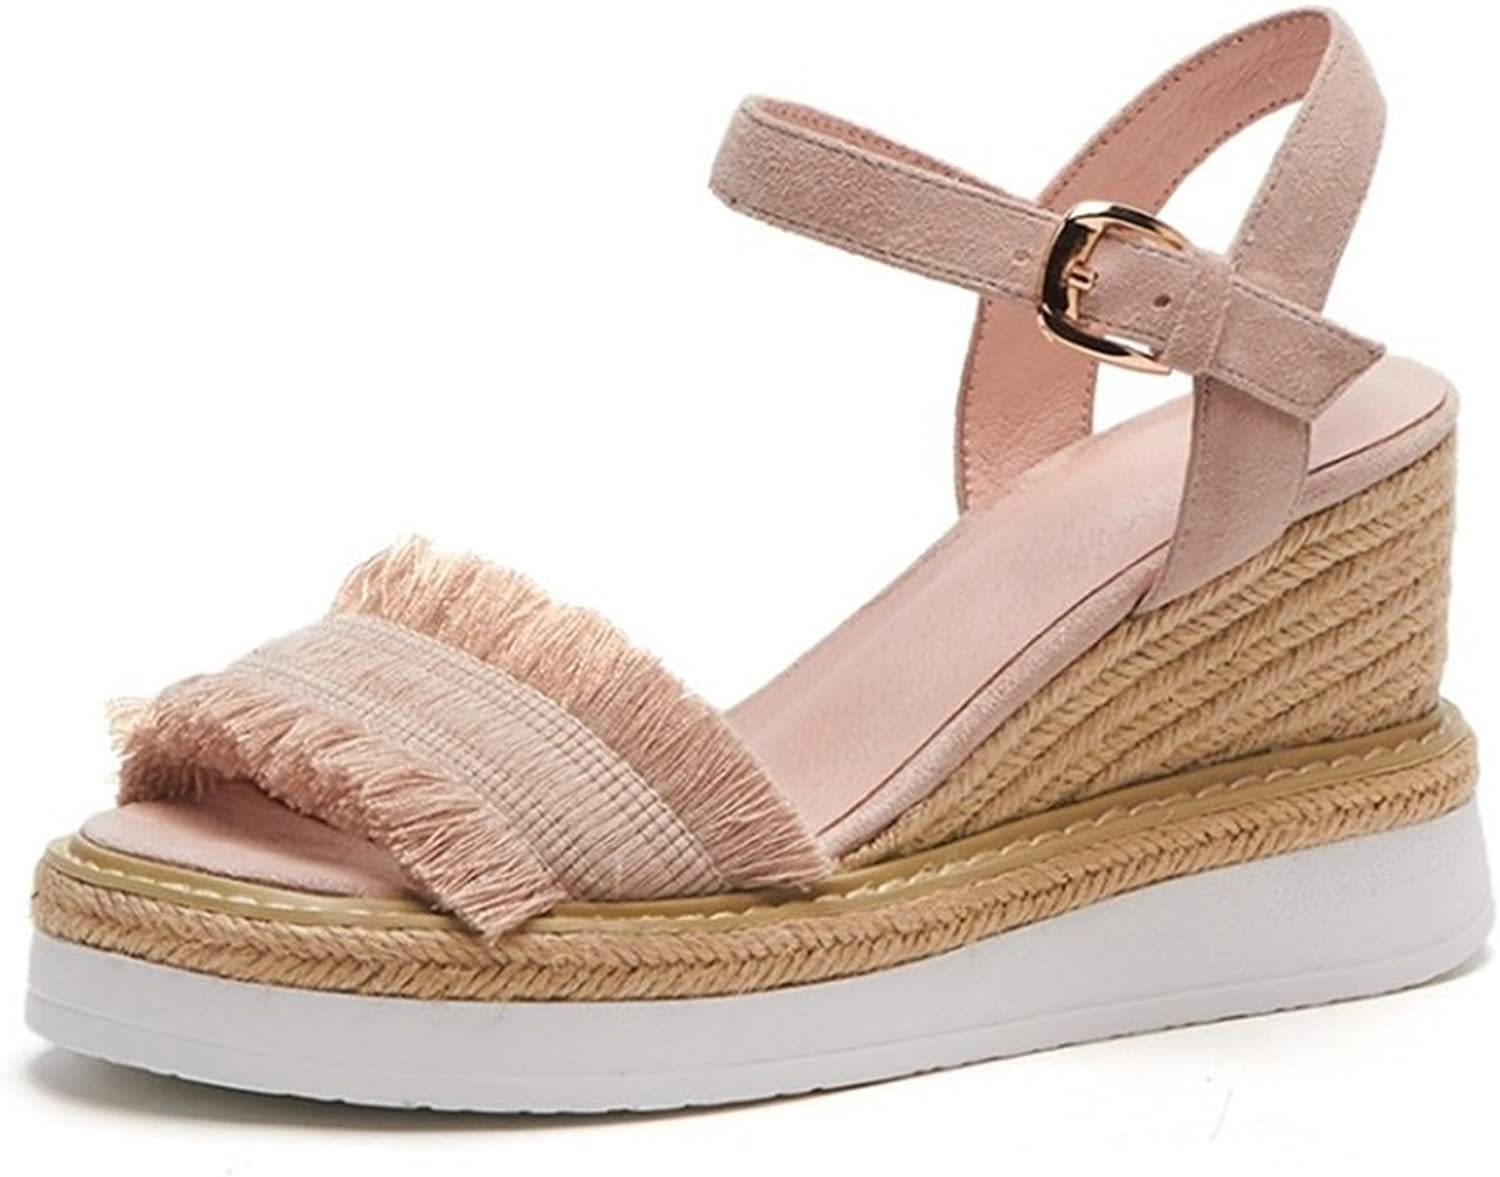 Jiang Women's shoes PU Summer Fall Sandals Flat Heel Round Toe Buckle for Office & Career Outdoor Green Pink Apricot Sandals